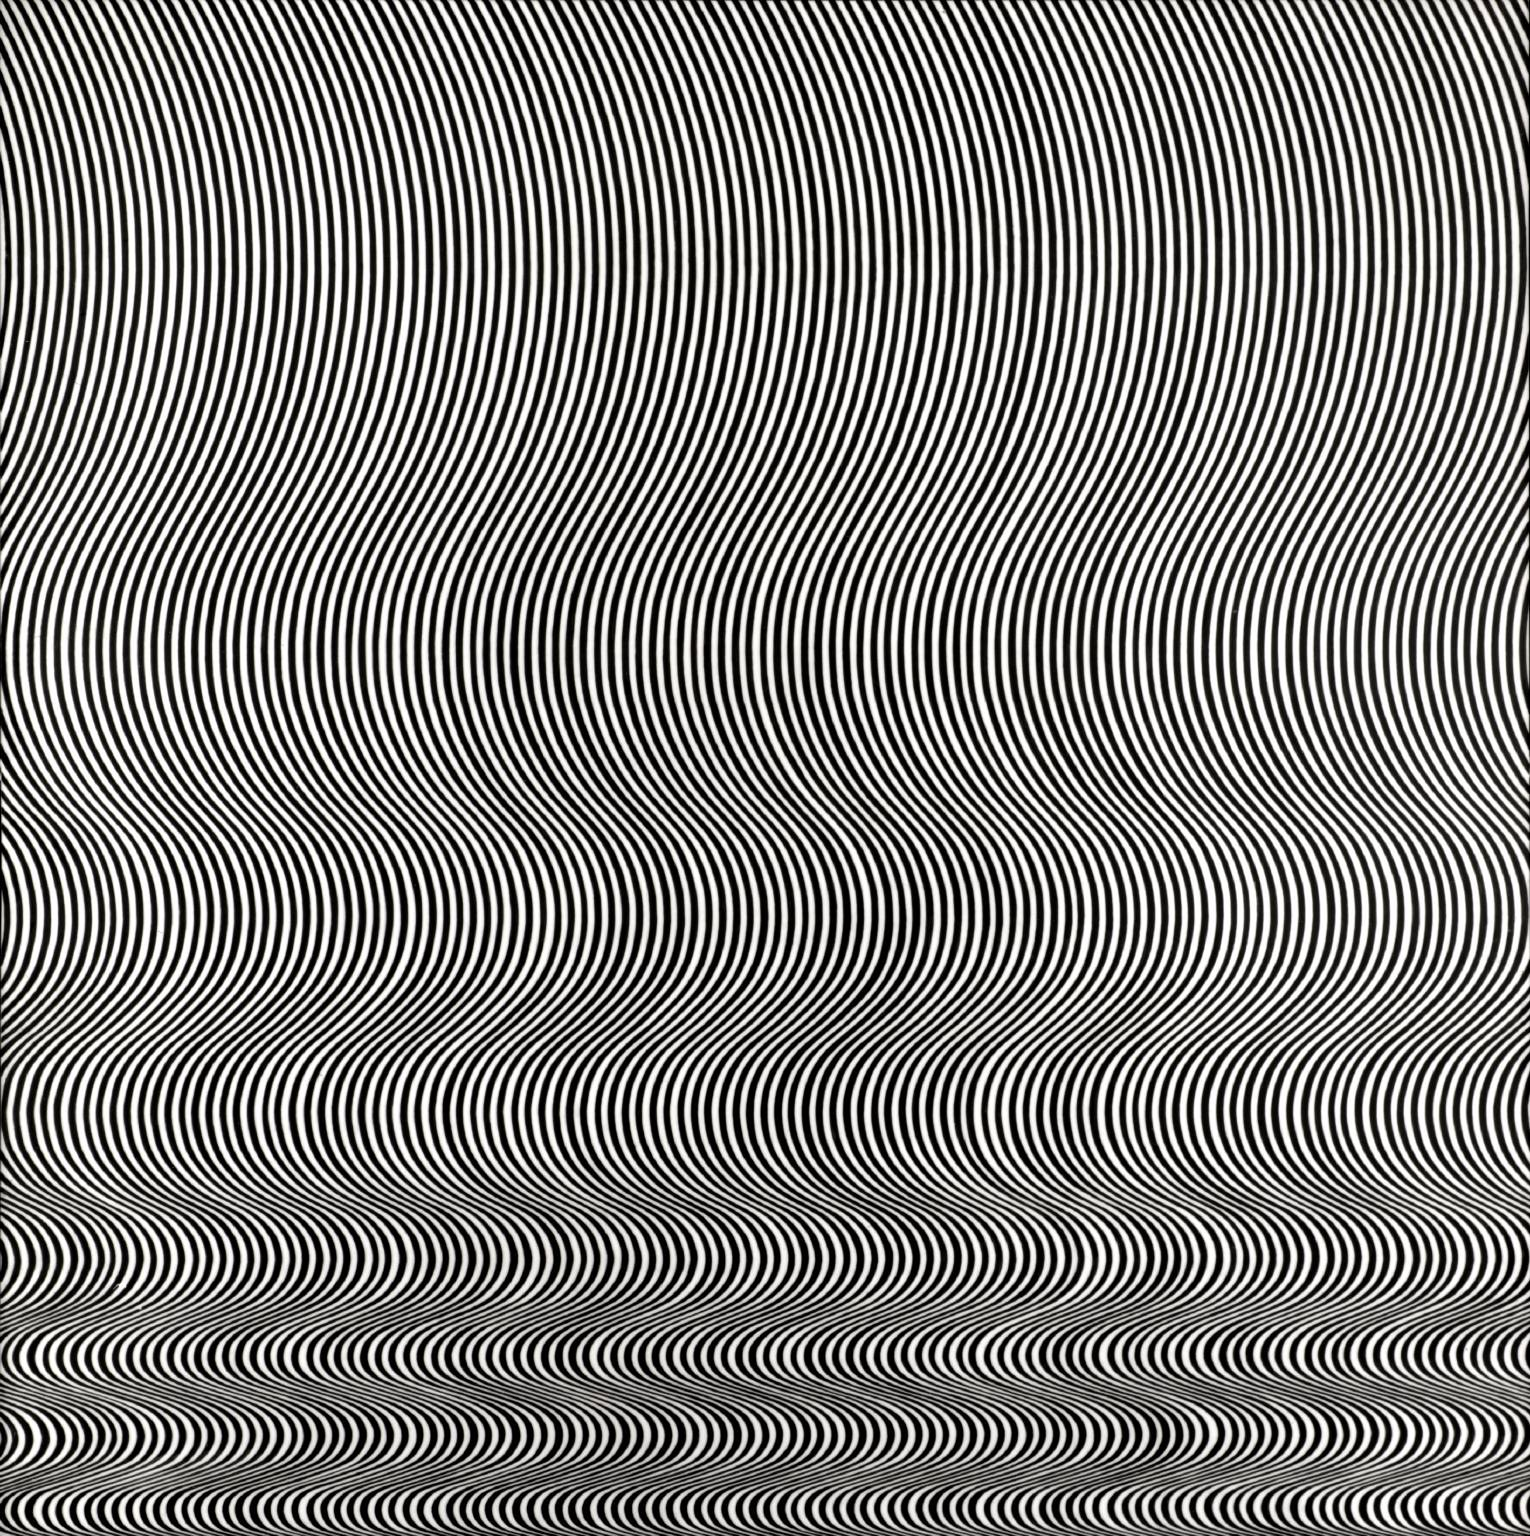 The Work of Bridget Riley: Juxtapoz-BridgetRiley05.jpg